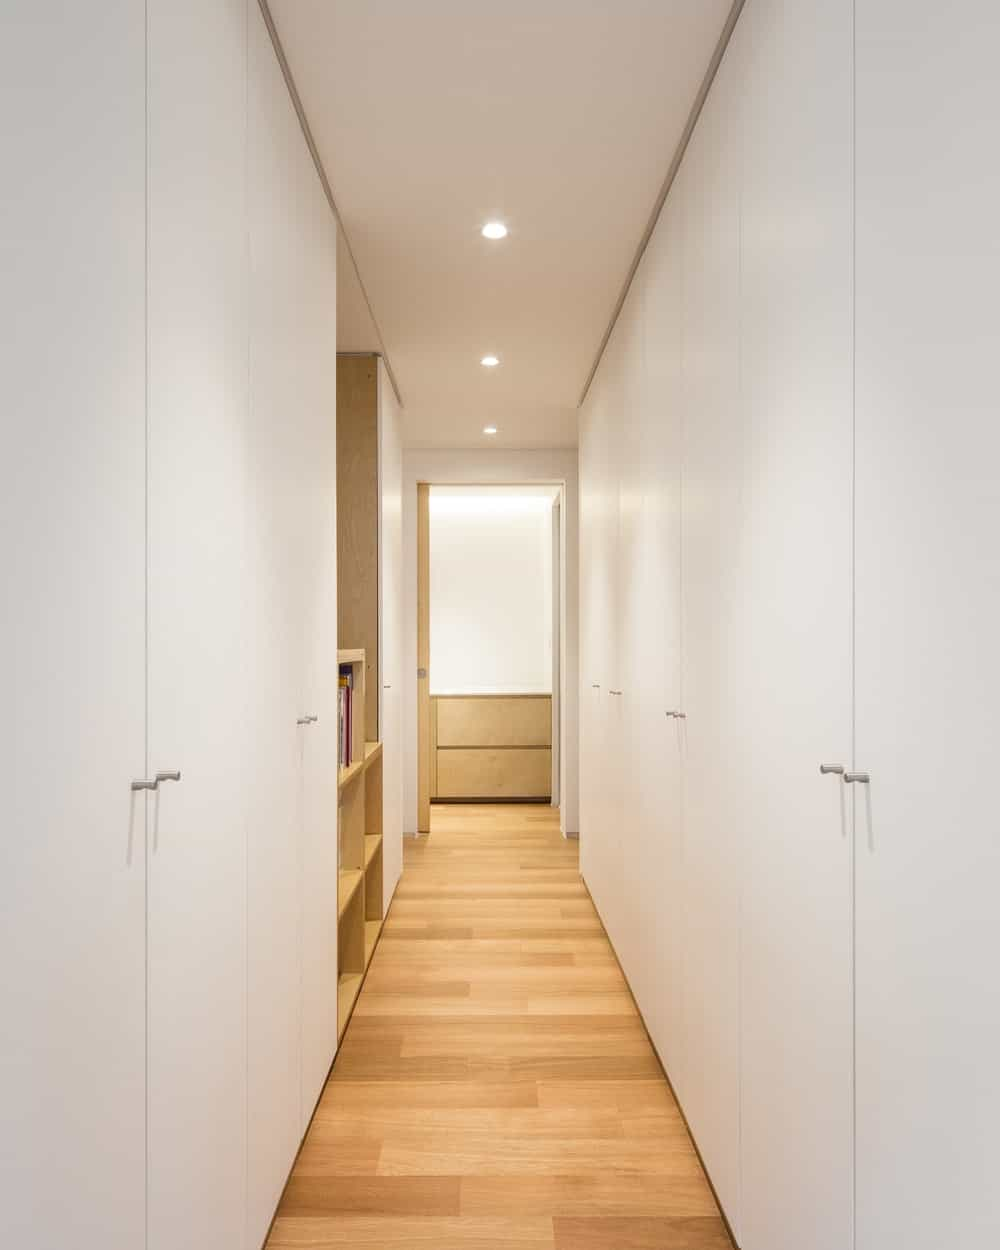 This is a hallway with hardwood flooring complemented by the flanking white walls and wooden shelves.